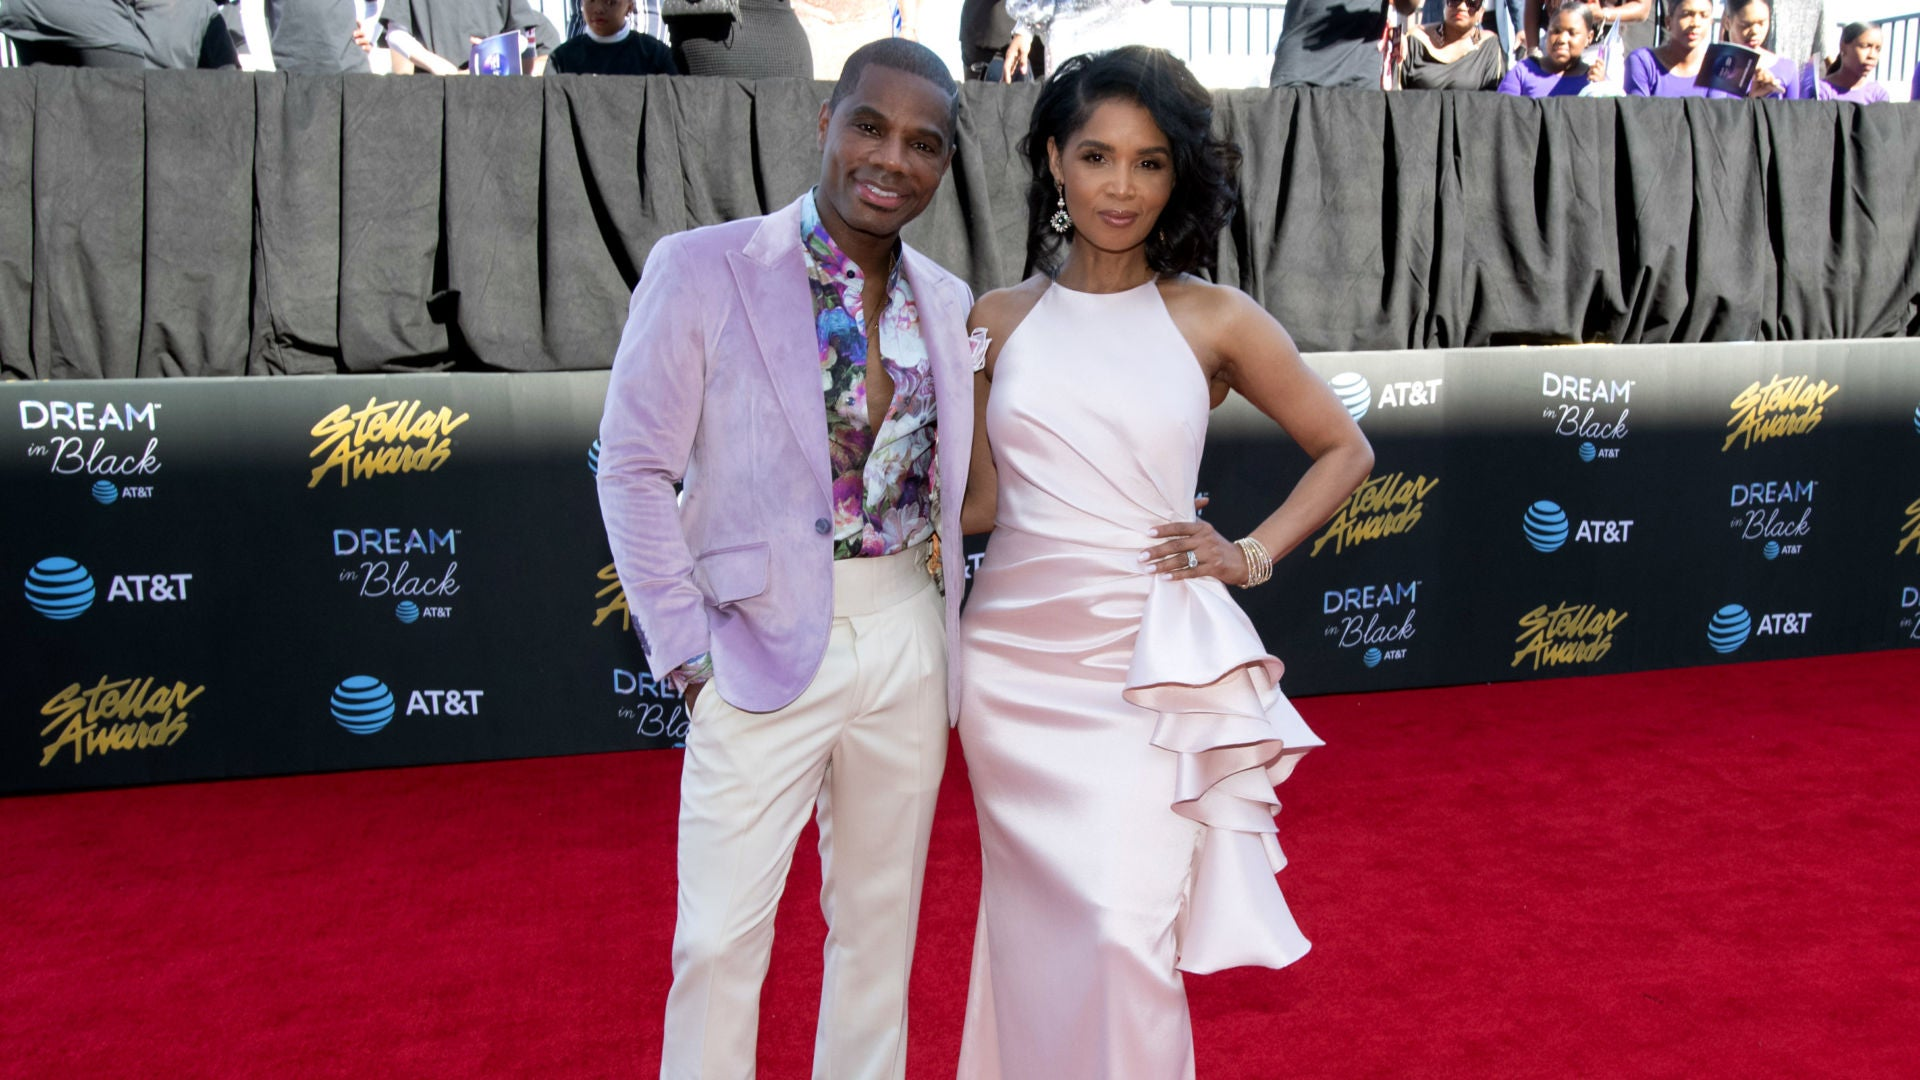 Kirk Franklin's Wife Tammy Showers Him With Love In Honor Of His Album Release